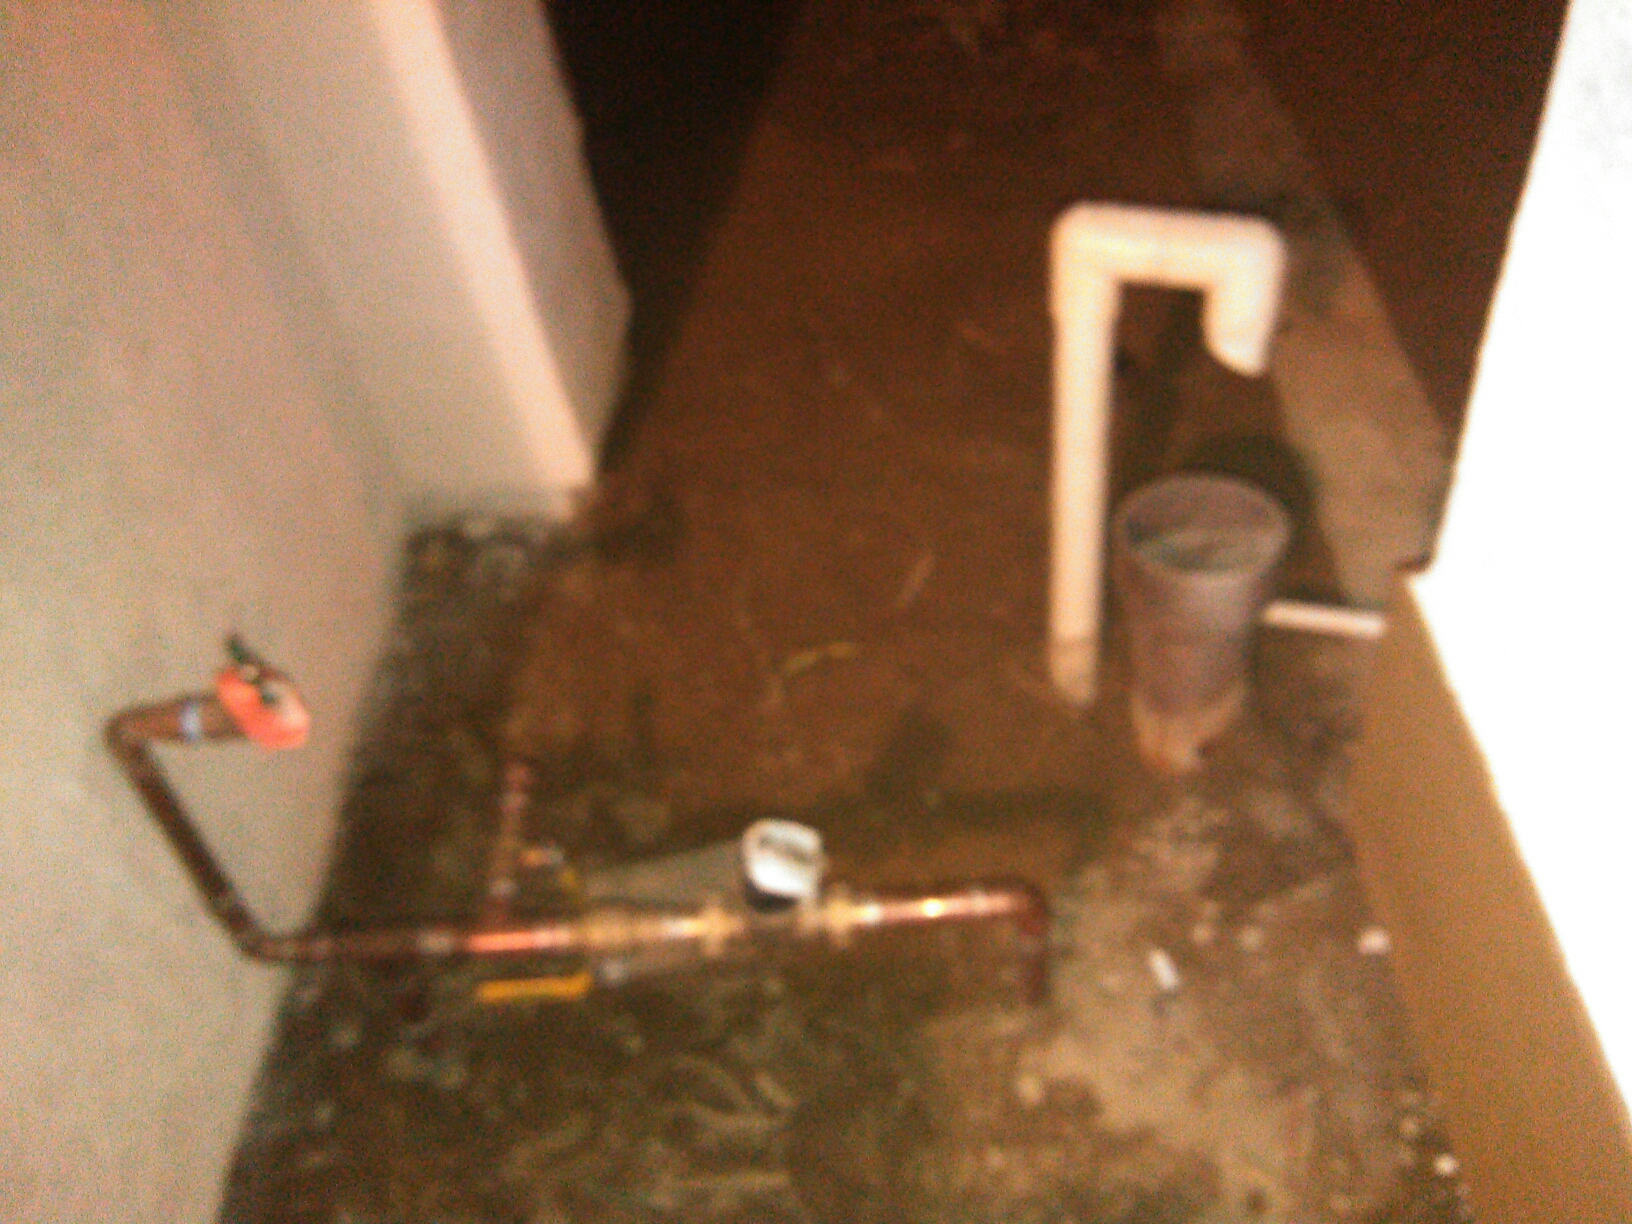 Diamond Bar, CA - Copper water line repair with PVC pool drain riser into 3 inch cast  p trap drain